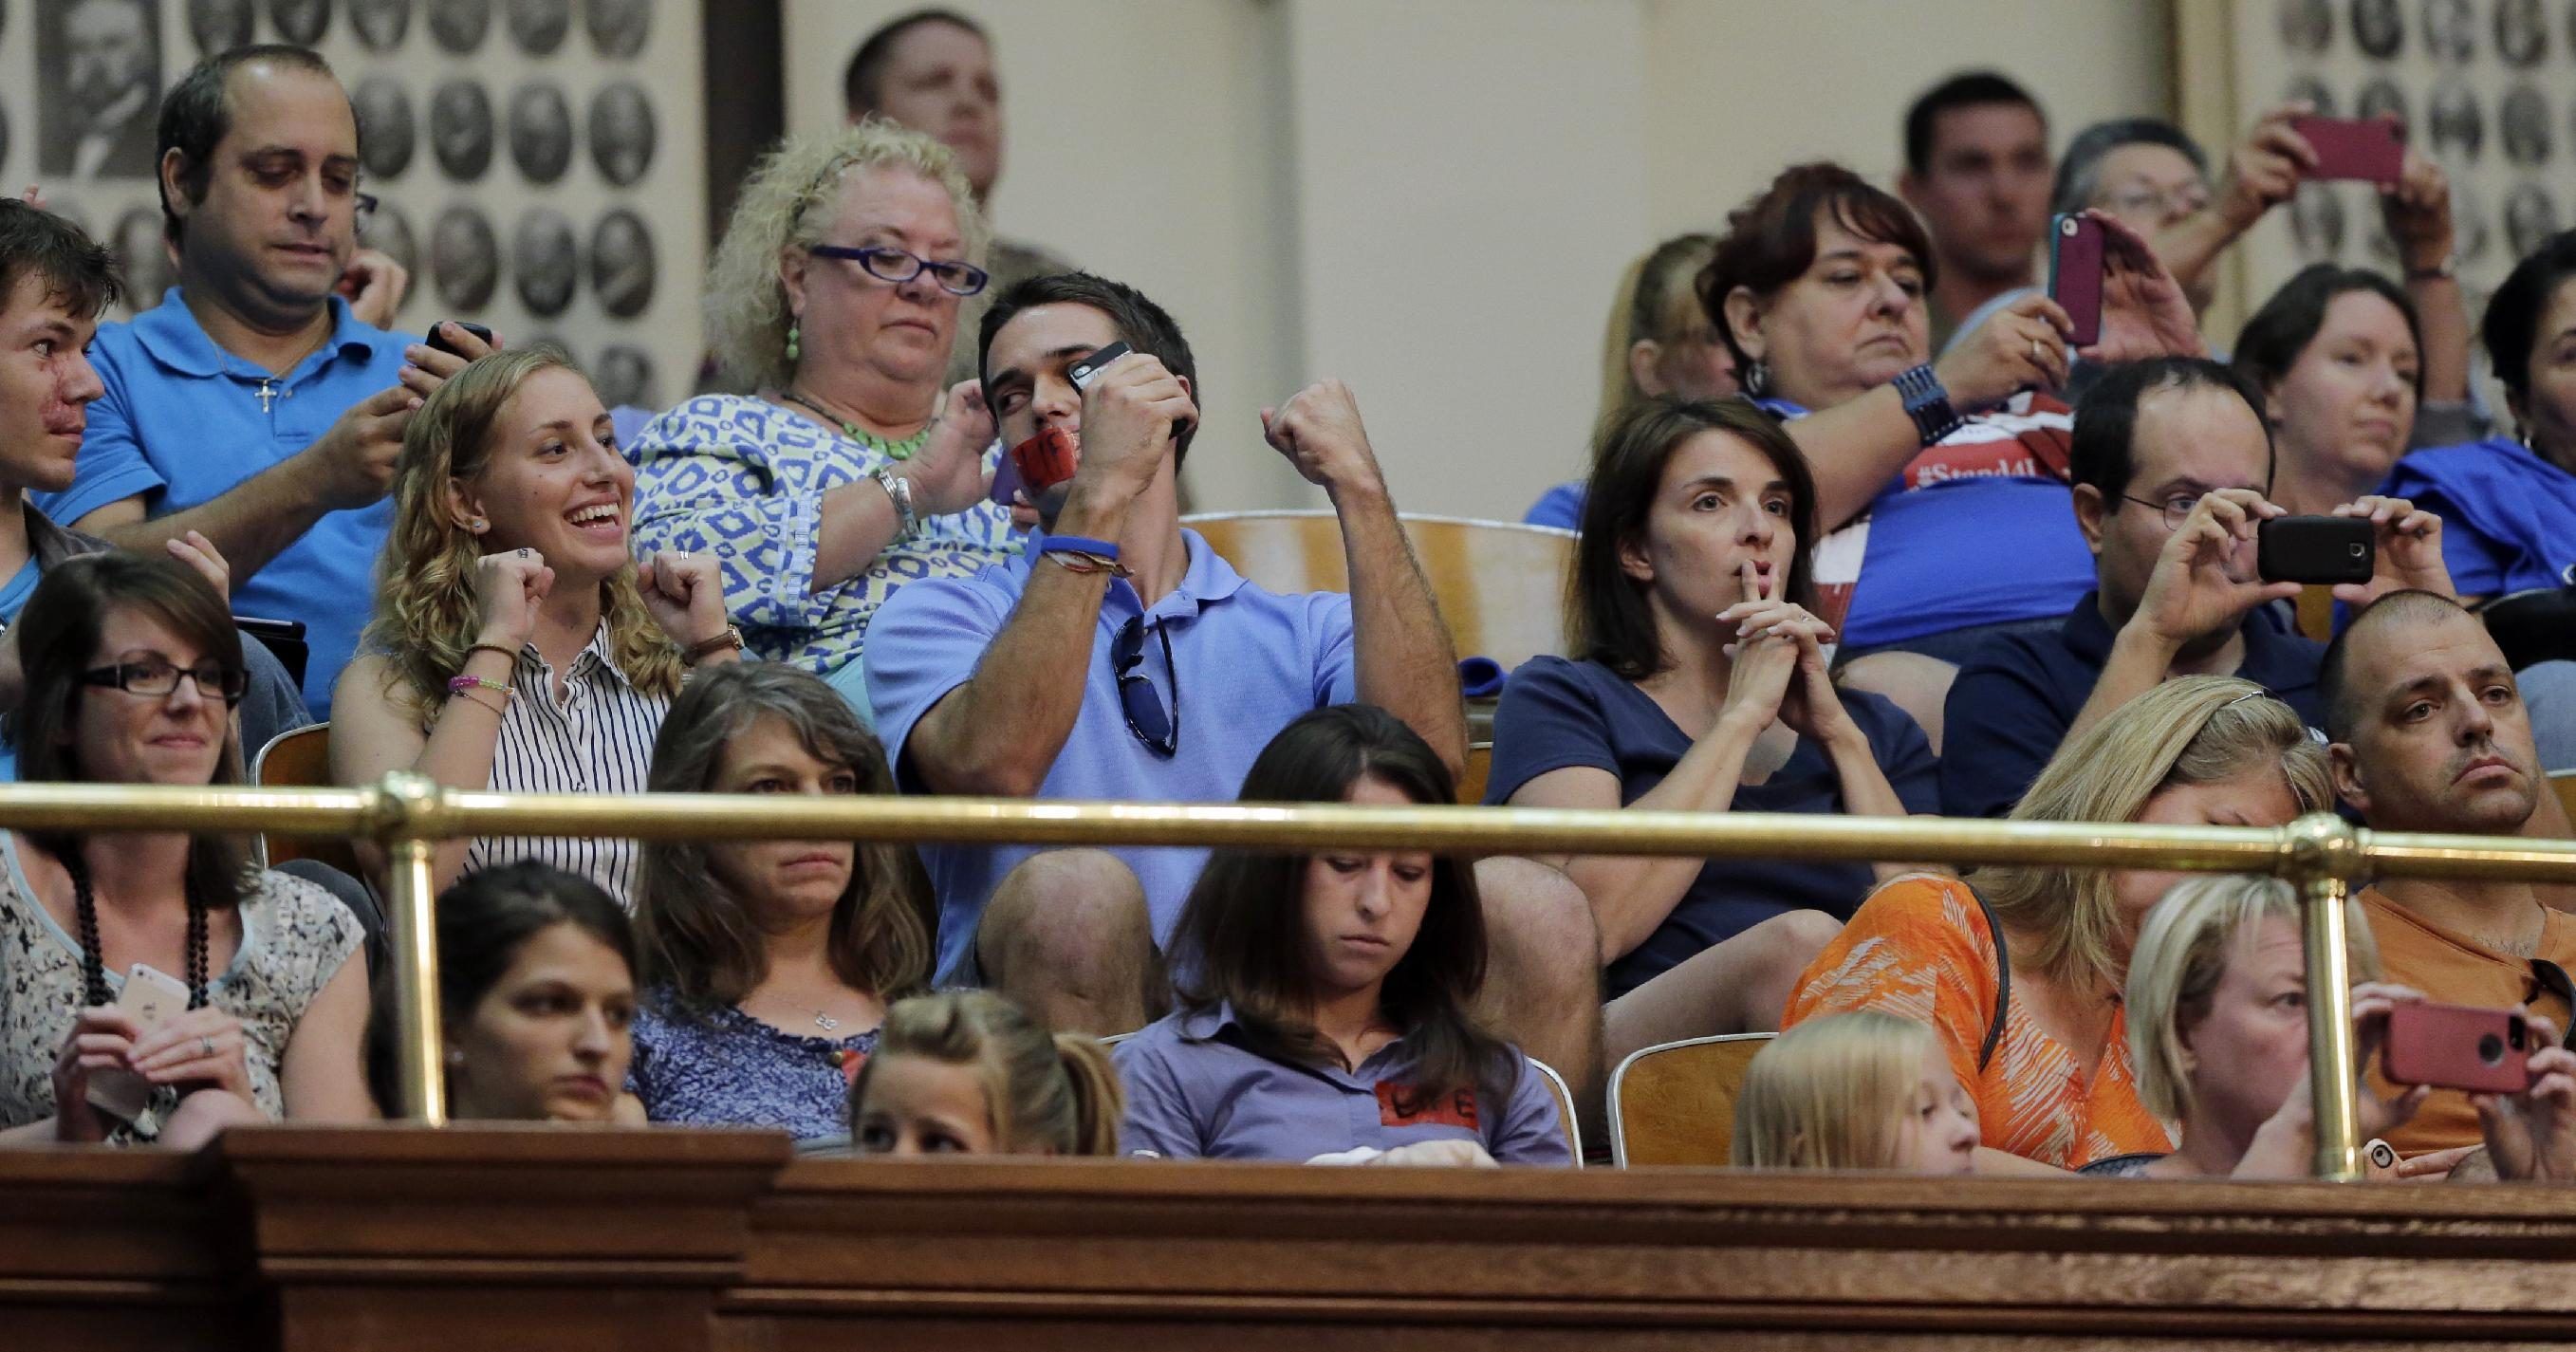 ADDS THAT BILL IS PROVISIONALLY APPROVED, WITH FINAL VOTE SCHEDULED FOR WEDNESDAY - Supporters of HB 2, an abortion bill, react in the gallery of the Texas House after the bill was provisionally approved, Tuesday, July 9, 2013, in Austin, Texas. A final, formal vote is scheduled for Wednesday. The bill would require doctors to have admitting privileges at nearby hospitals, only allow abortions in surgical centers, dictate when abortion pills are taken and ban abortions after 20 weeks. (AP Photo/Eric Gay)